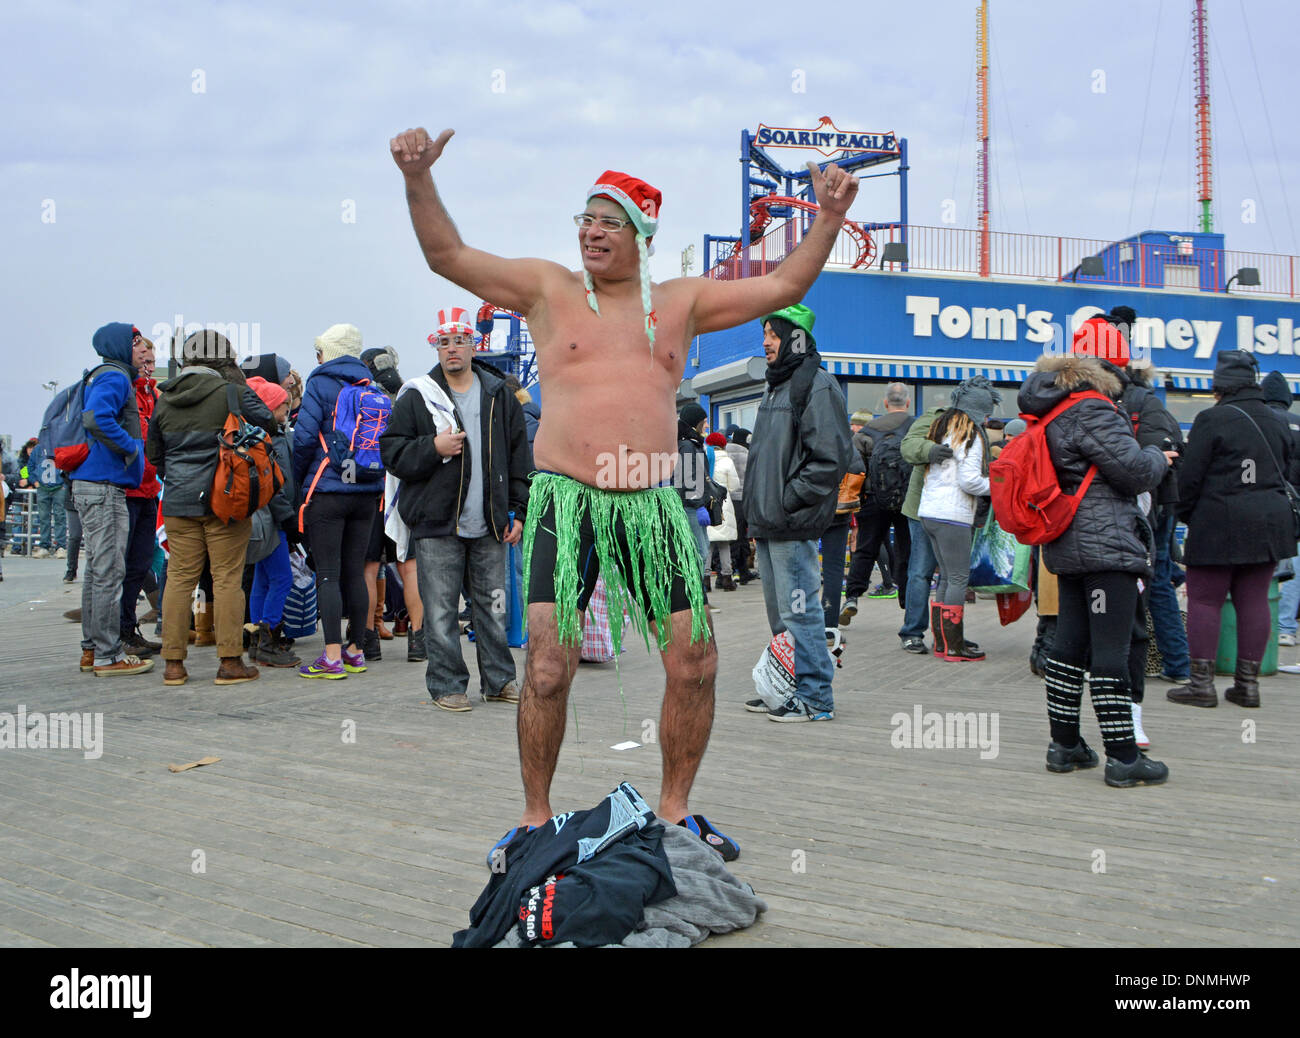 A participant in the annual Polar Bear Club's New Year's day swim in Coney Island Brooklyn, New York - Stock Image